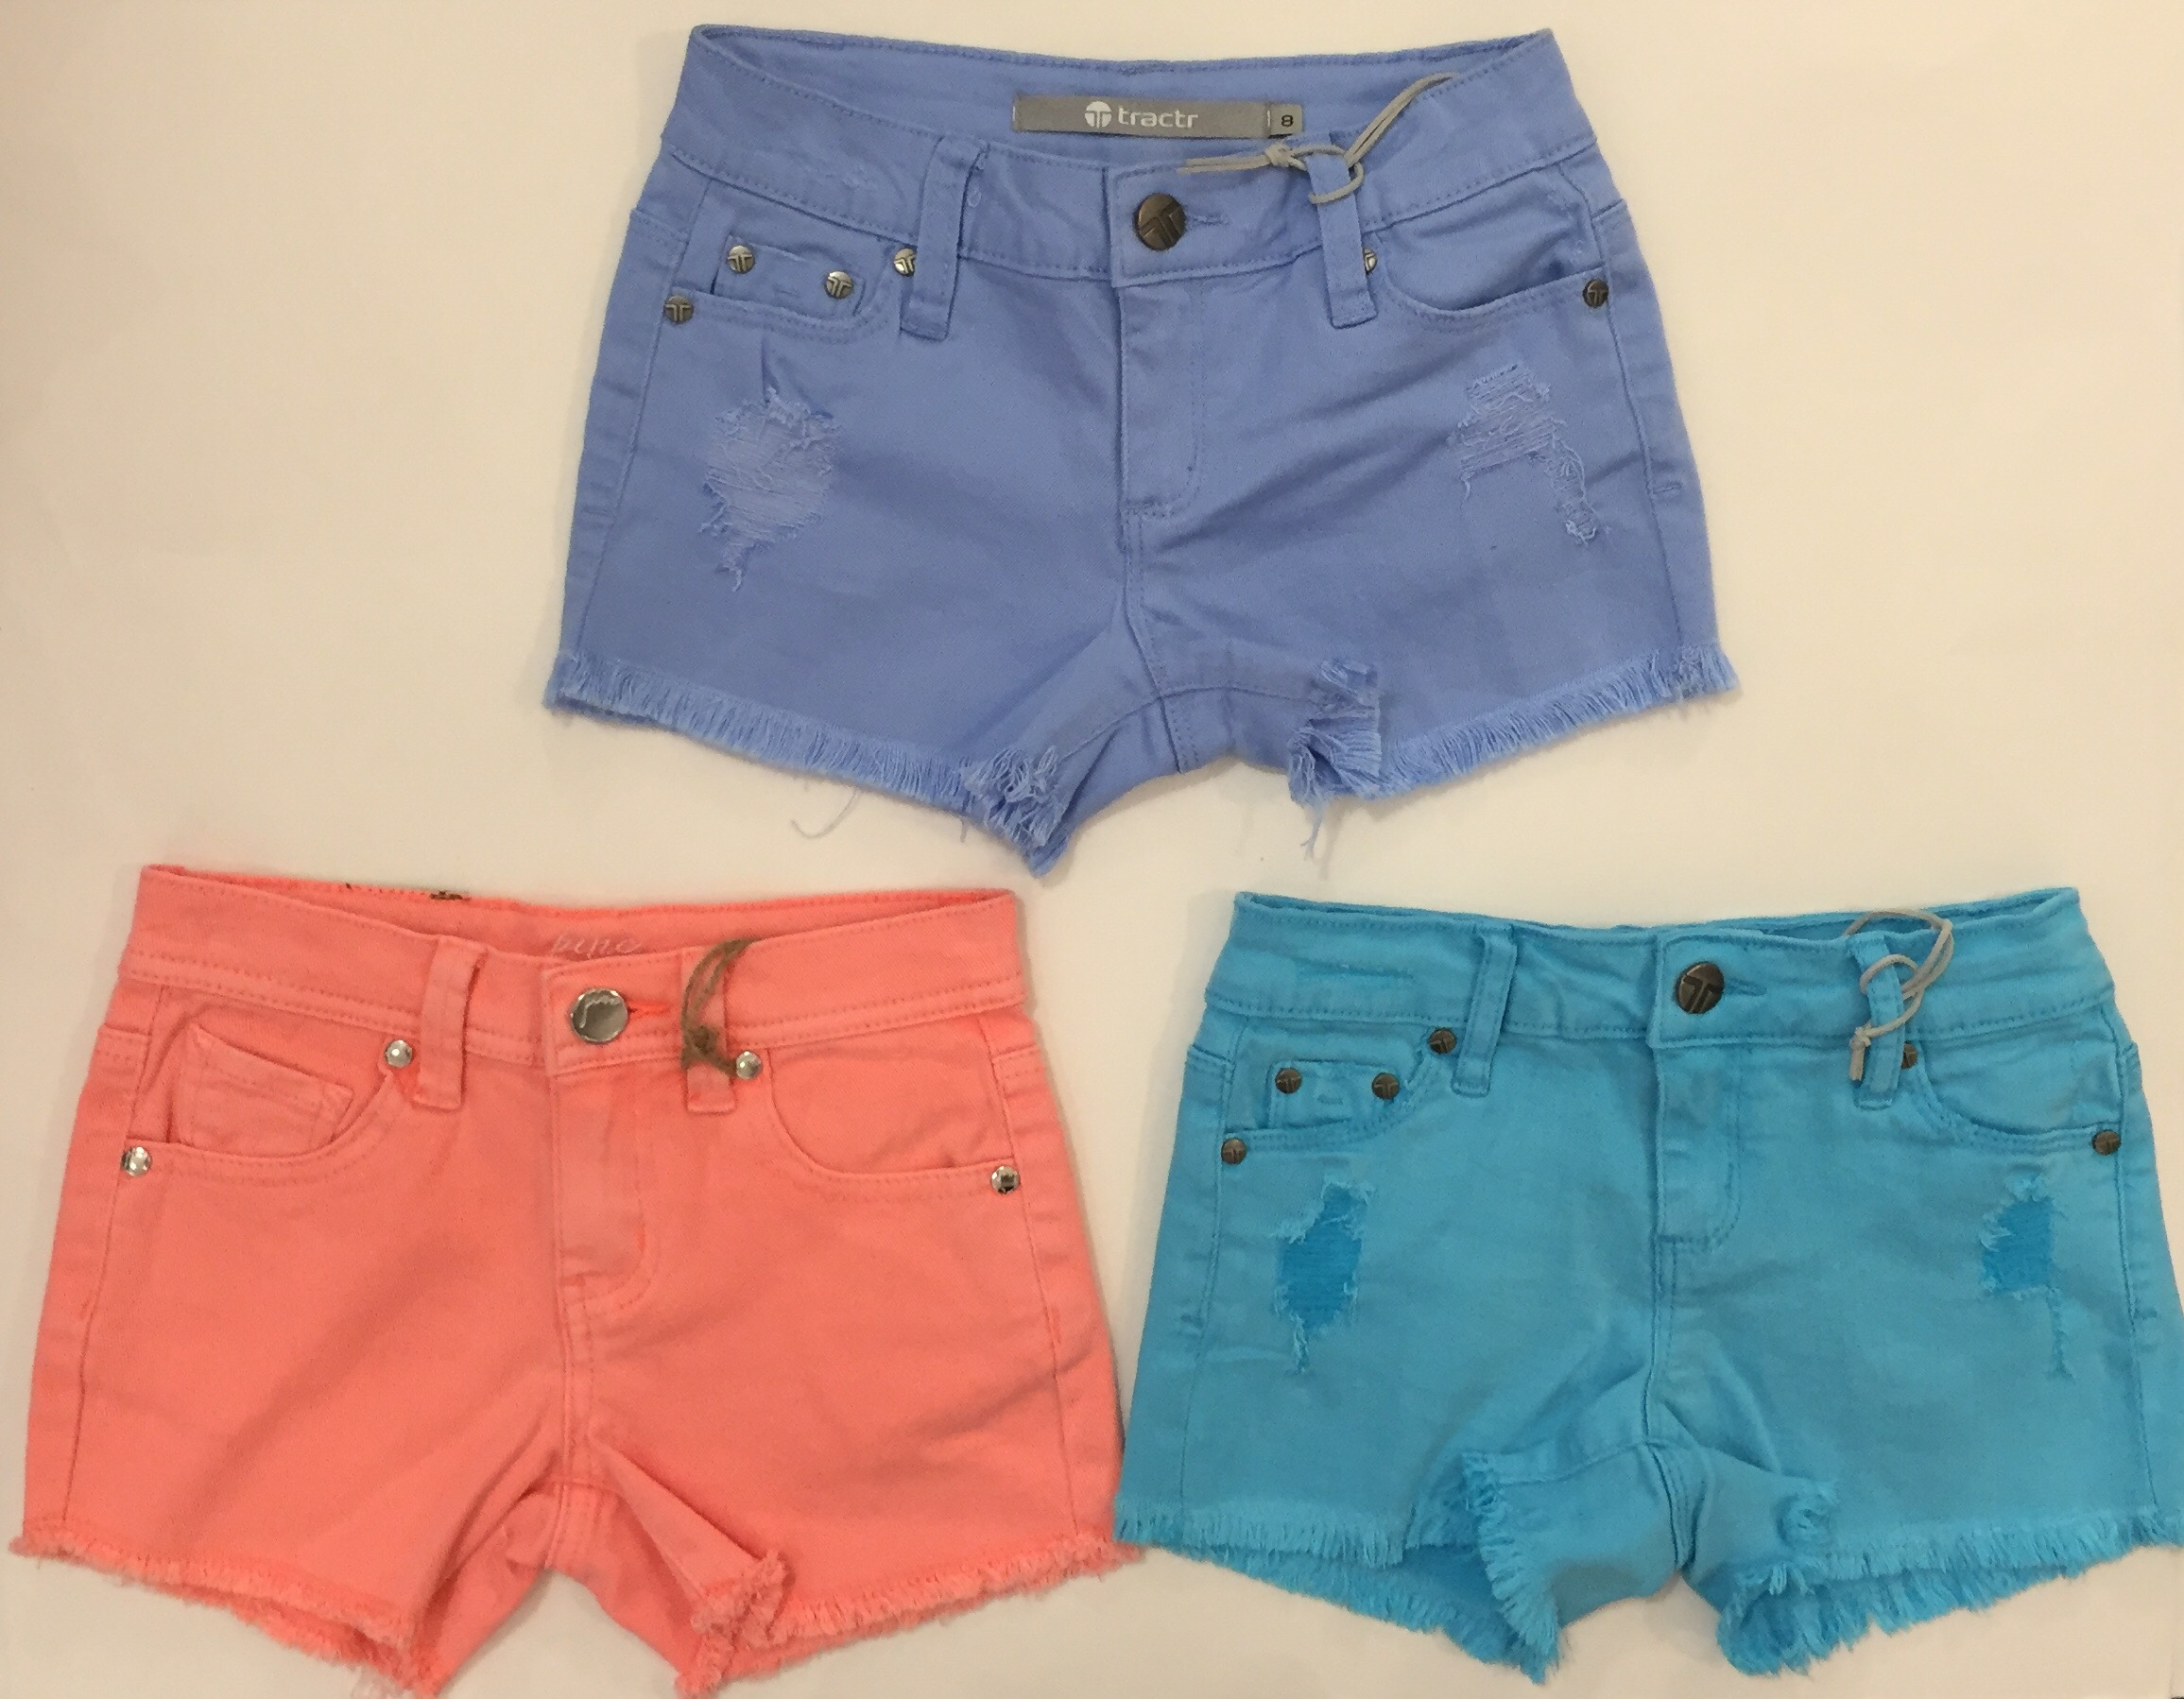 Check out these soft denim shorts available in lots of fun colors!